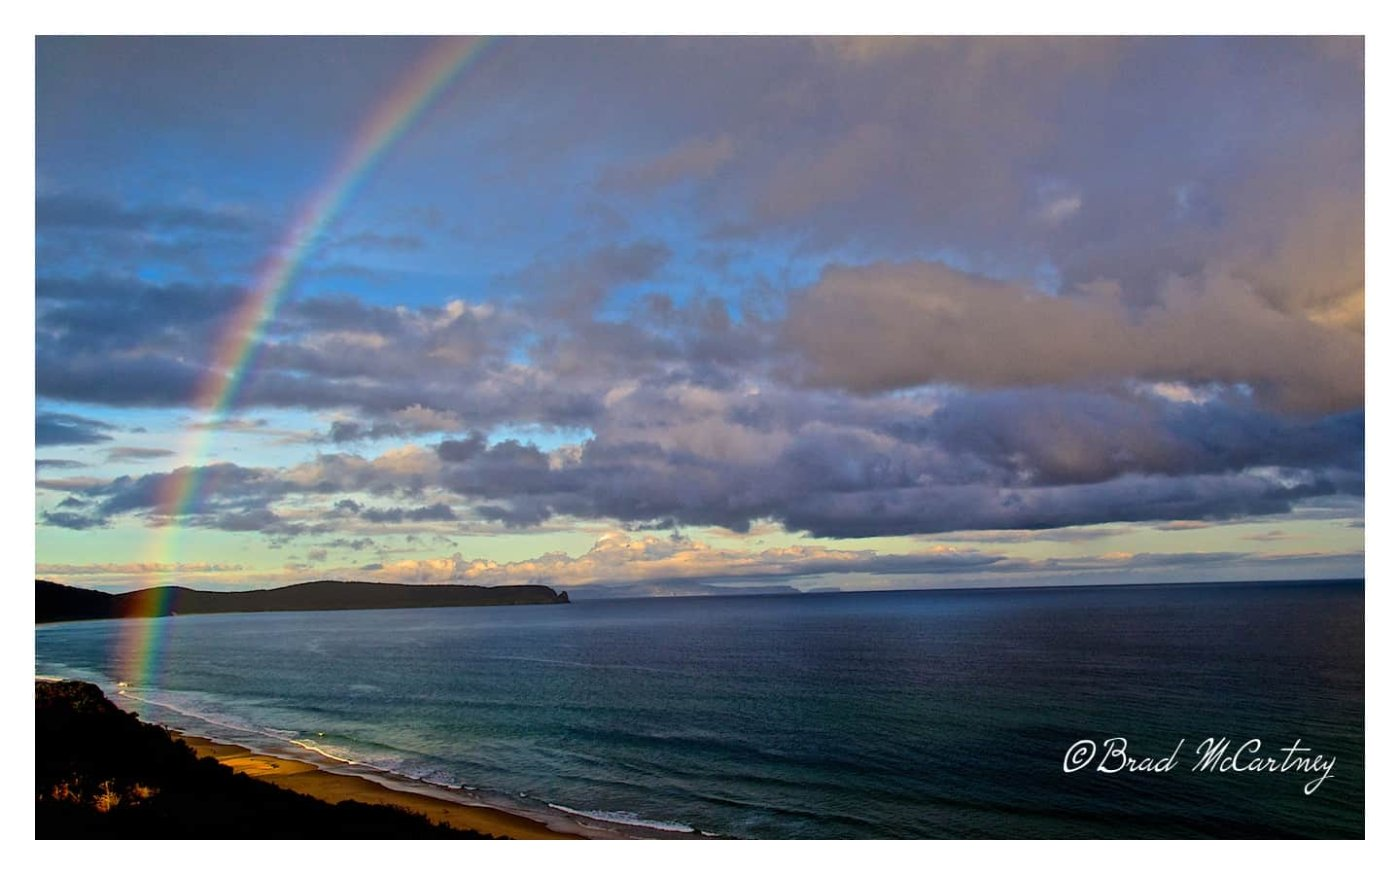 I followed the rainbow down to the beach, but no pot of gold